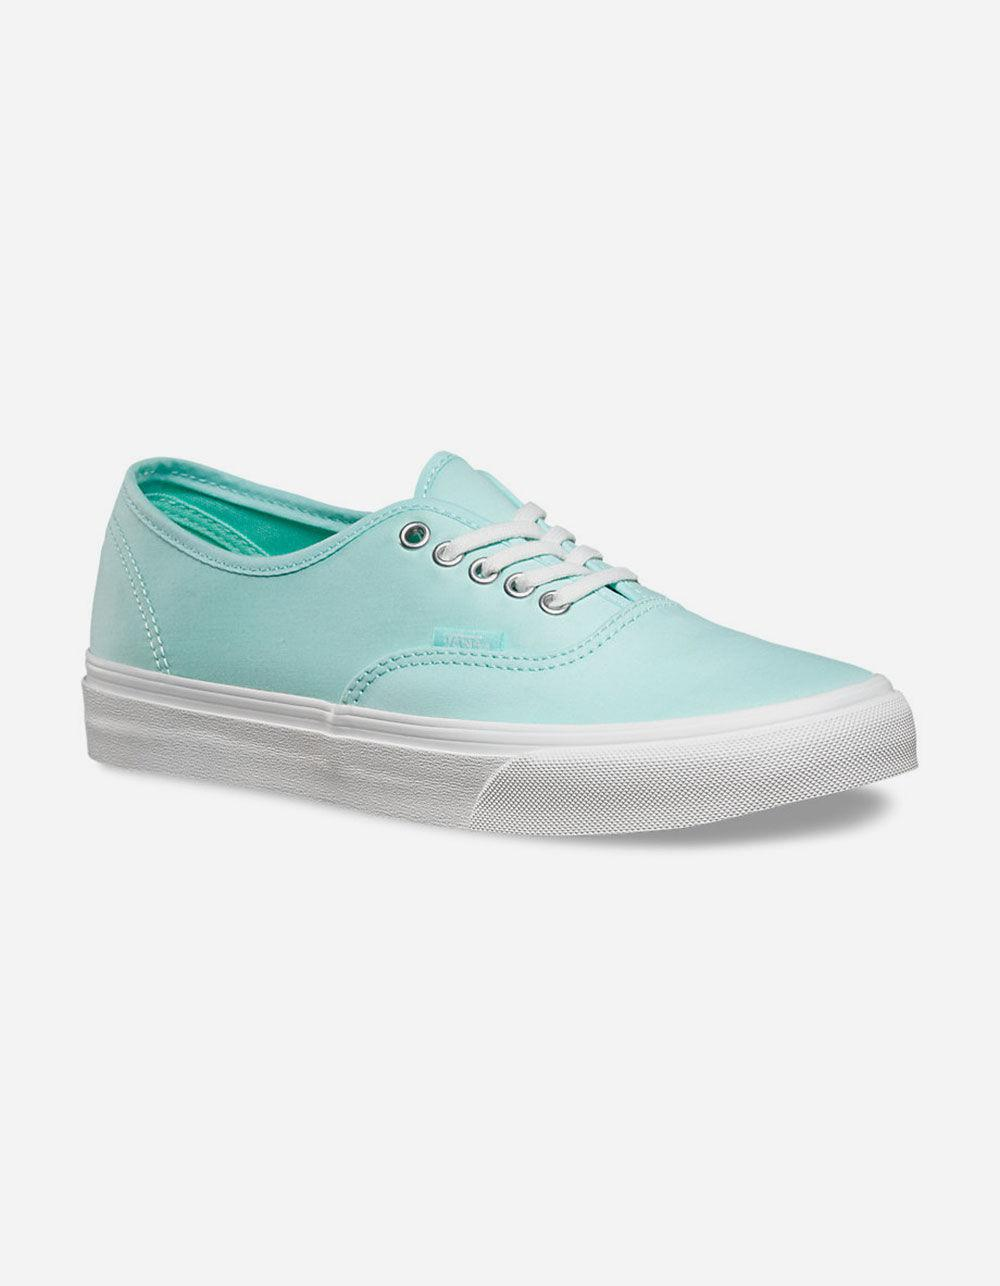 28b279bcb4 Lyst - Vans Brushed Twill Authentic Slim Womens Shoes